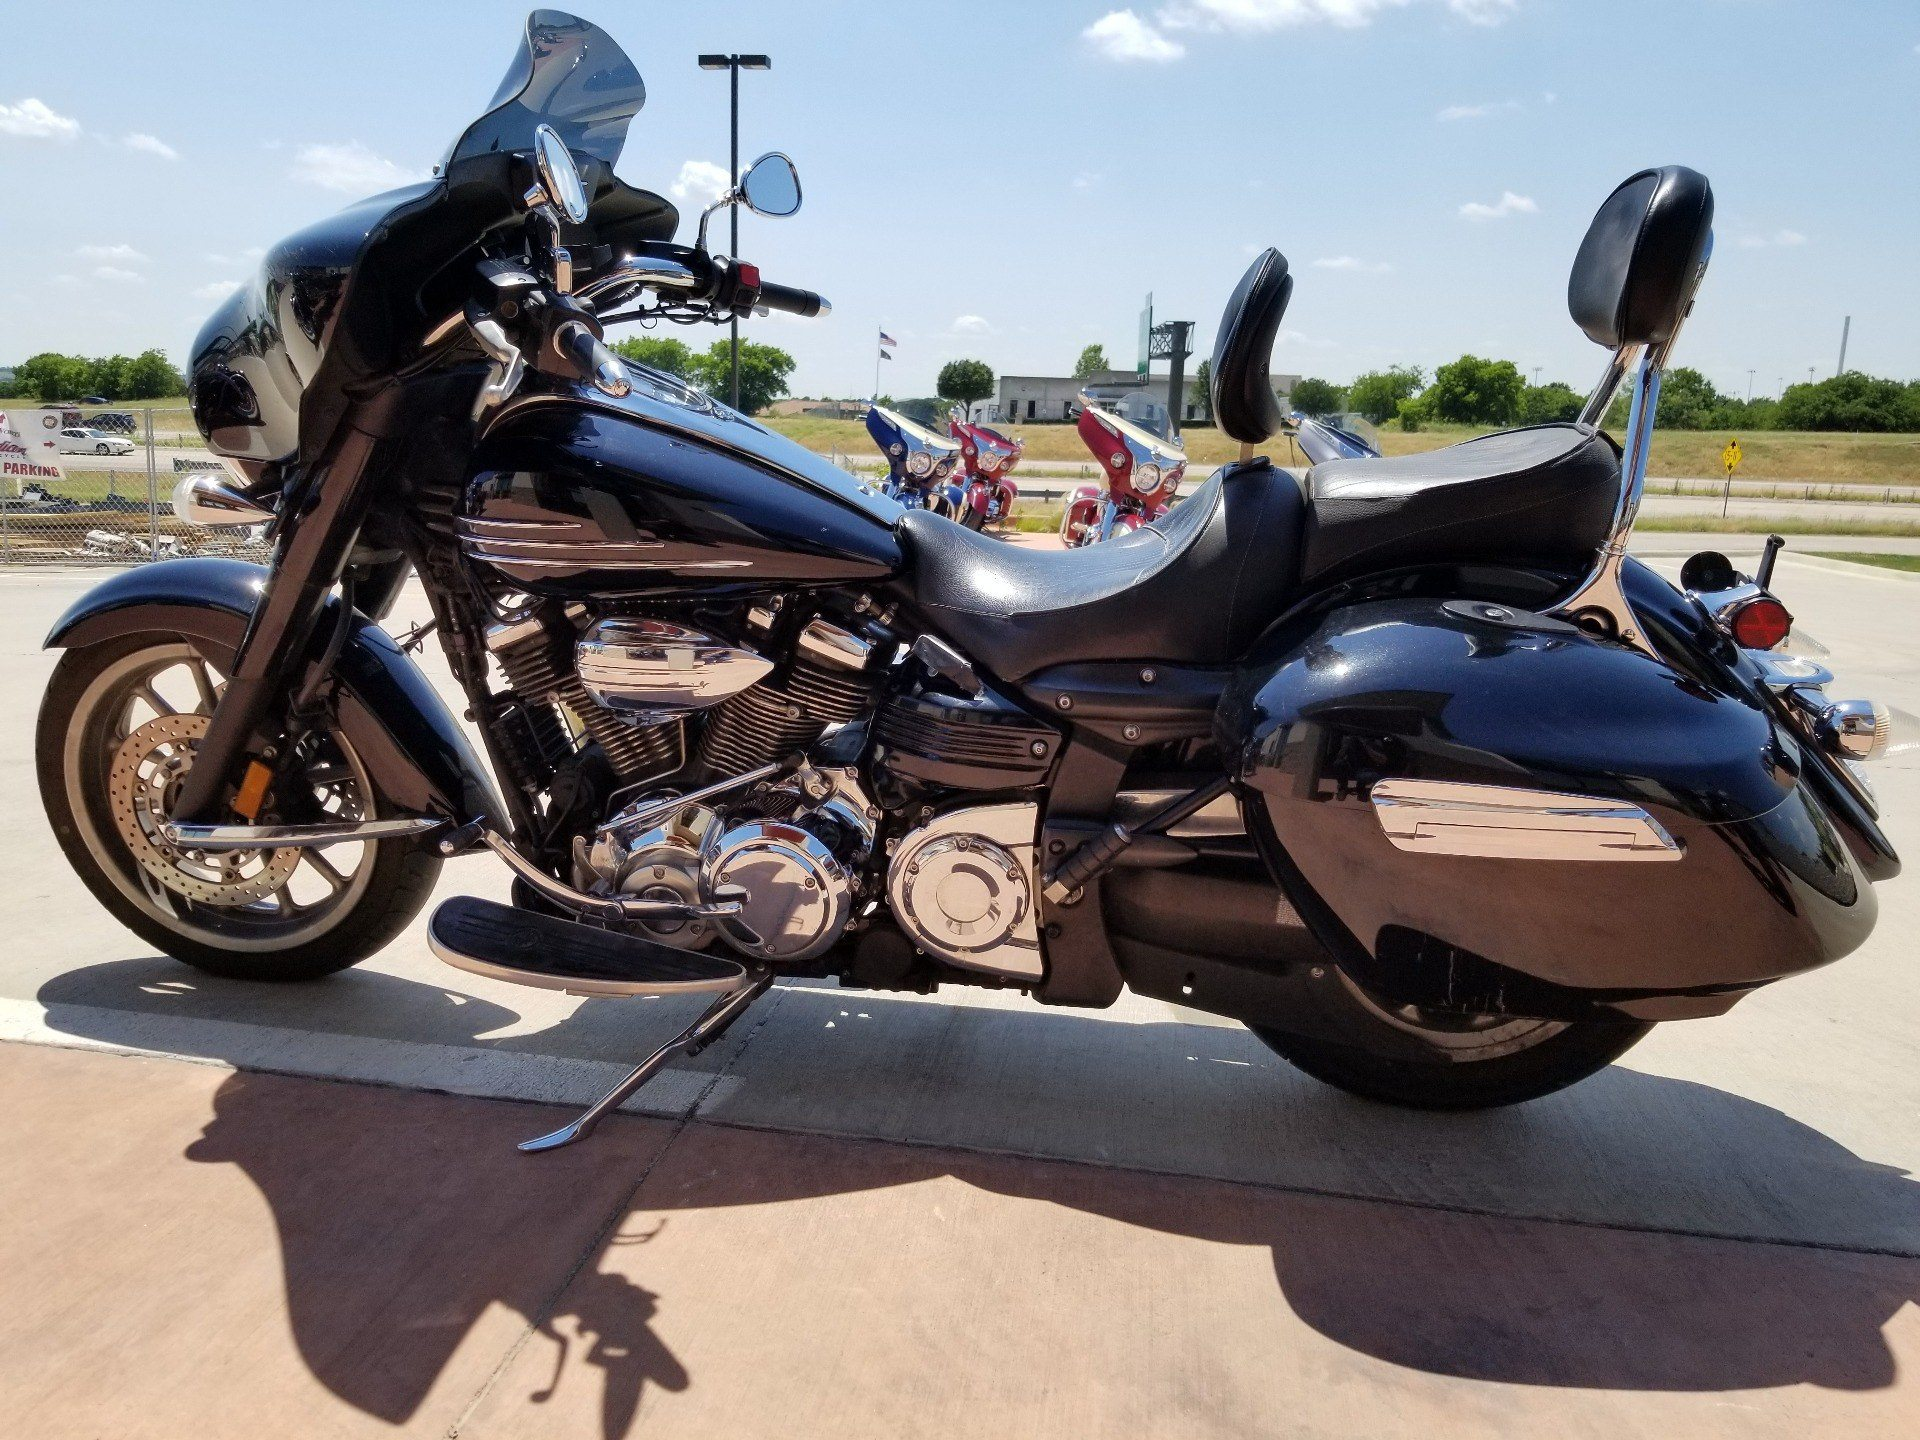 2010 Yamaha Stratoliner S in Fort Worth, Texas